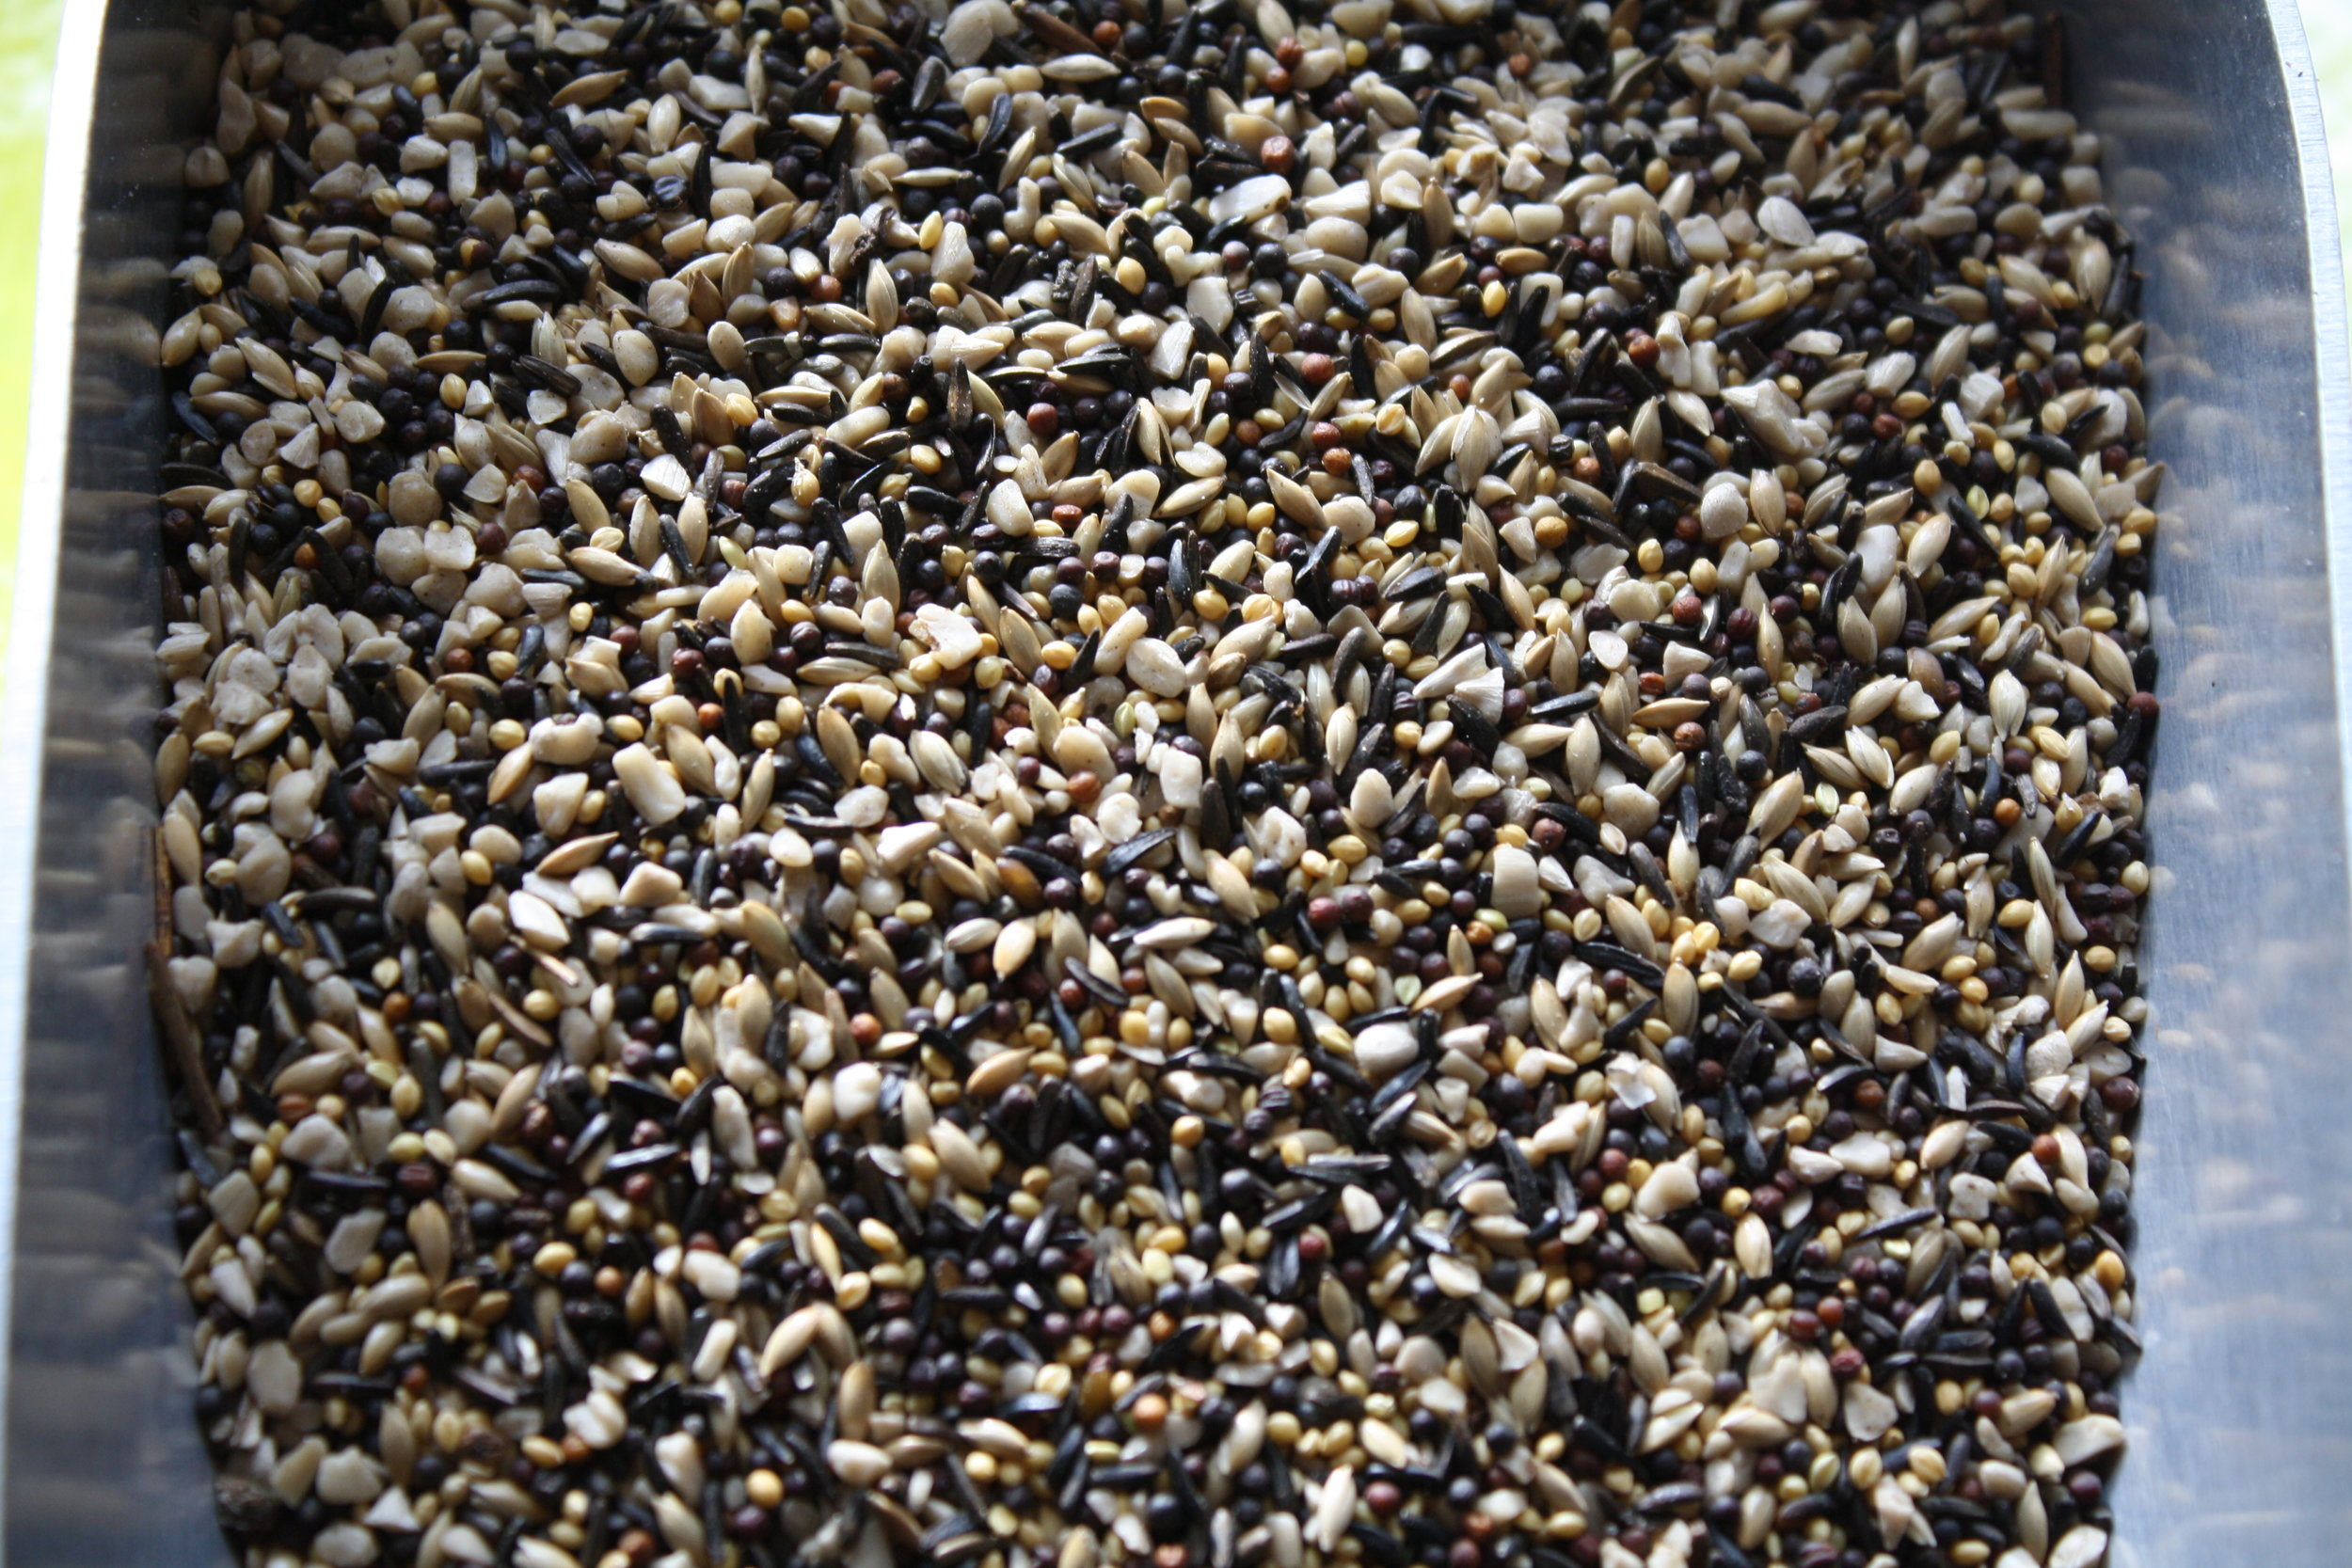 This mixture of seeds will drive your finches crazy. Small enough to fit into your thistle feeder, this mix will give them a variety of seeds to pleasure their palate. Available by the pound, 25 and 50 pound bags.